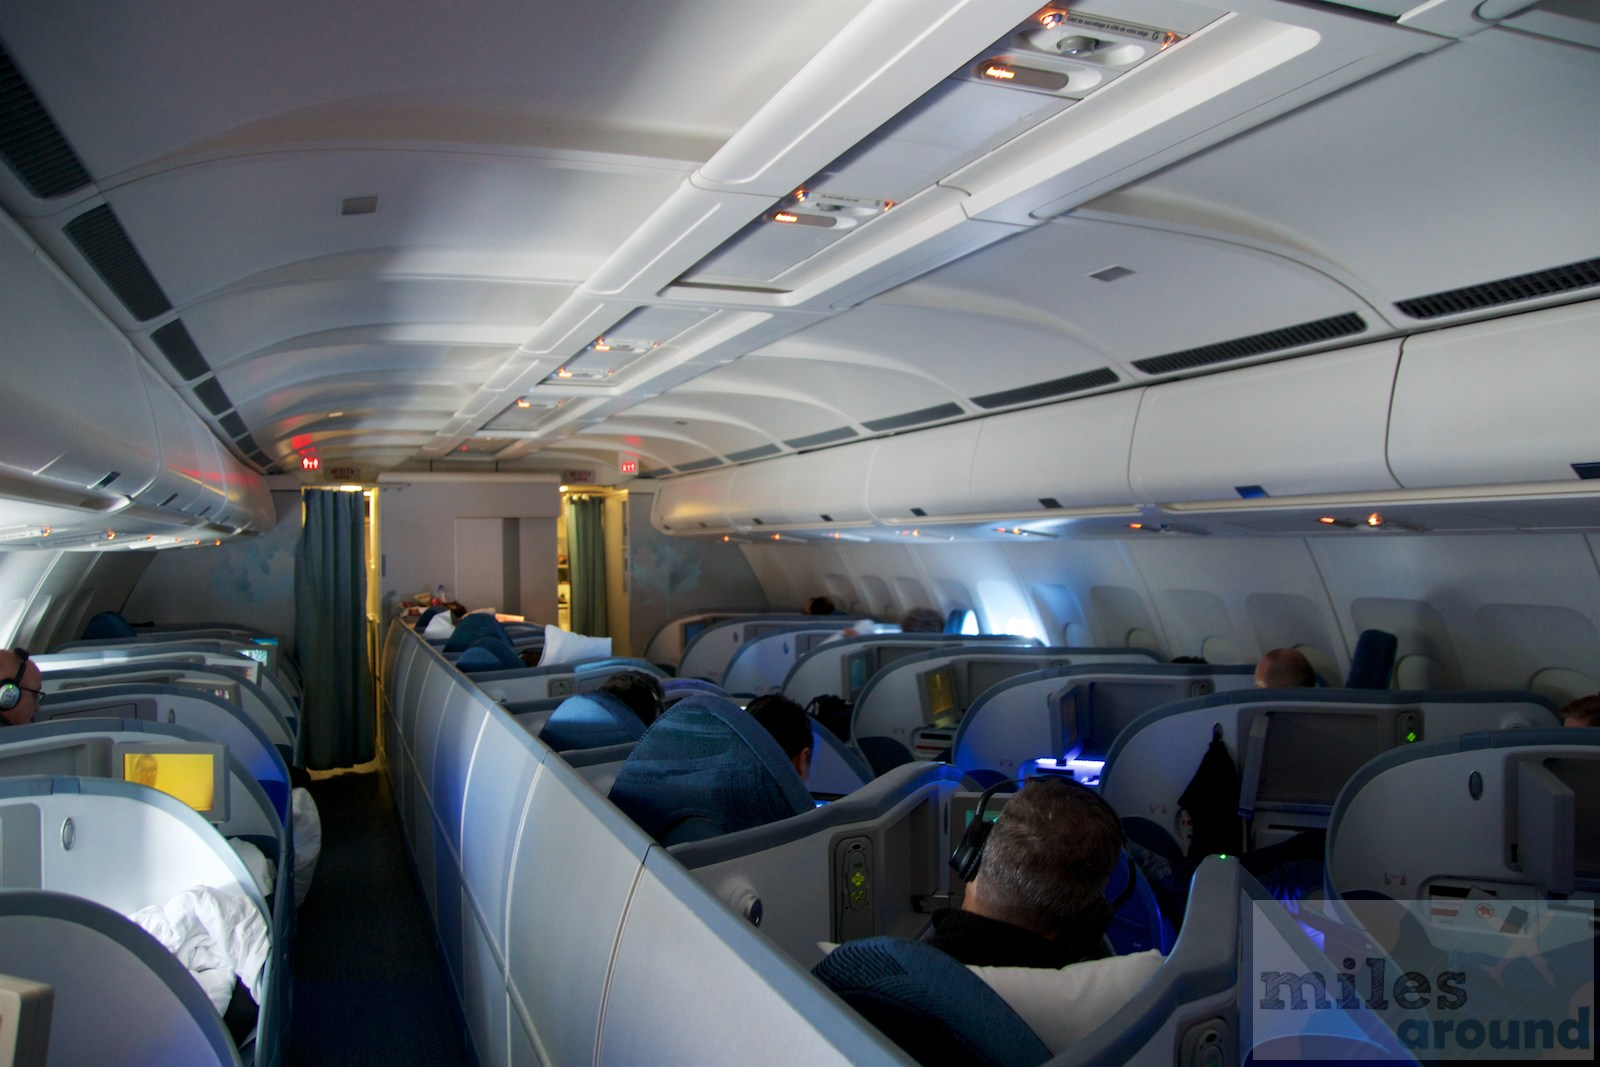 Air Canada Airbus A330 300 Business class cabin interior with 1 1 1 seats layout configuration @milesaround